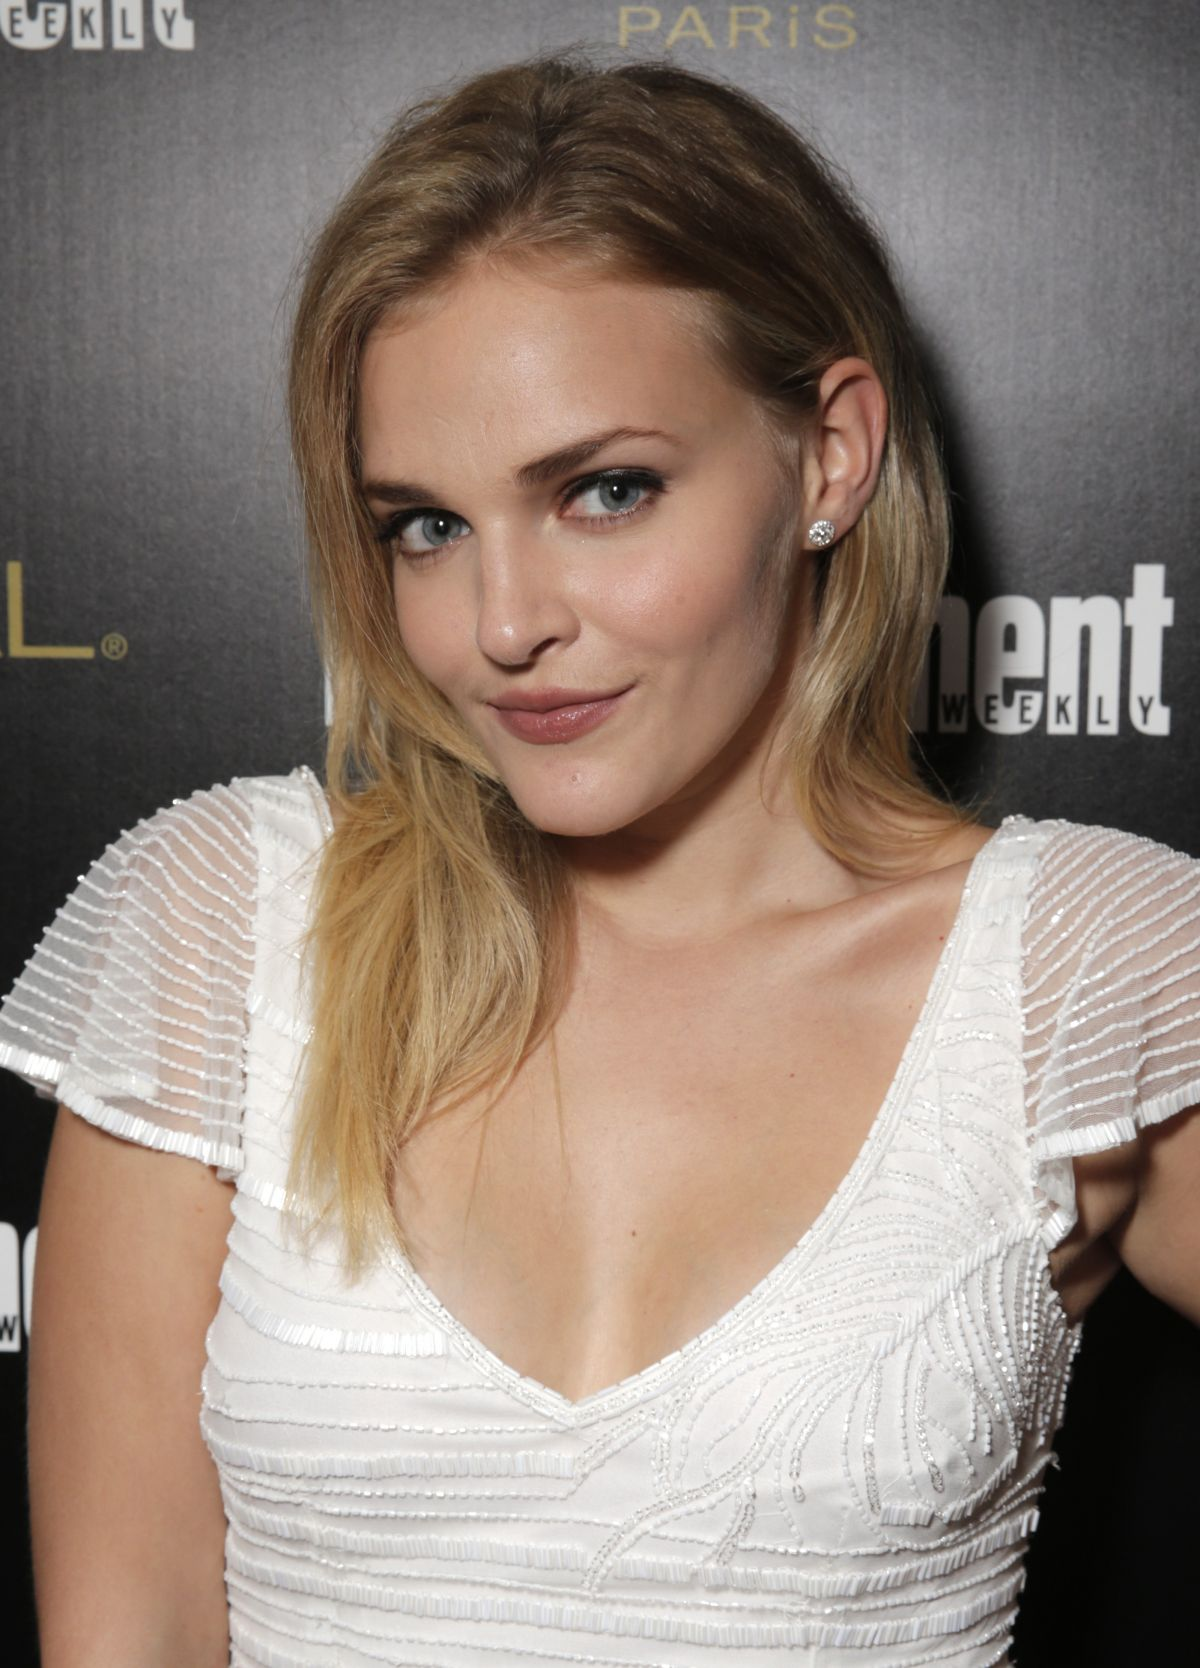 butt Snapchat Madeline Brewer naked photo 2017